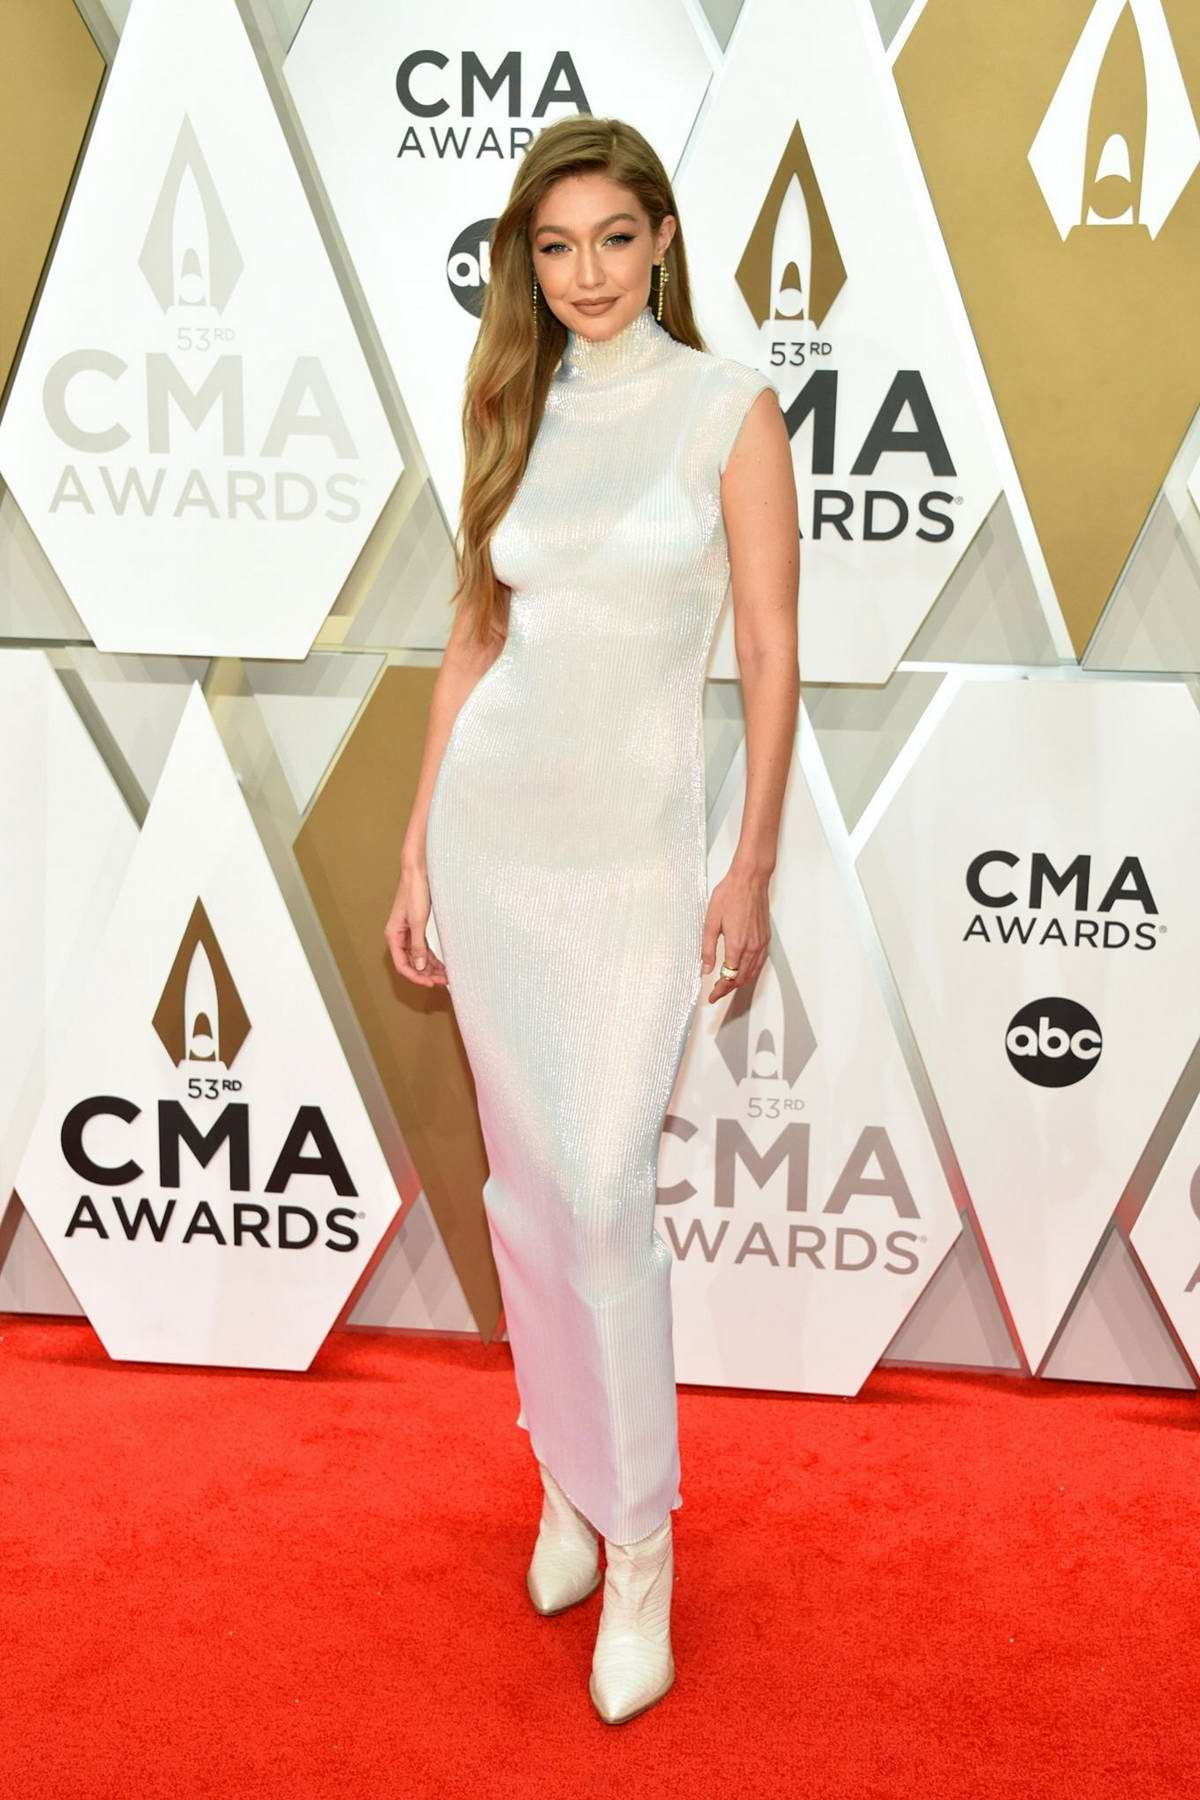 Gigi Hadid attends the 53nd annual CMA Awards at the Music City Center in Nashville, TN